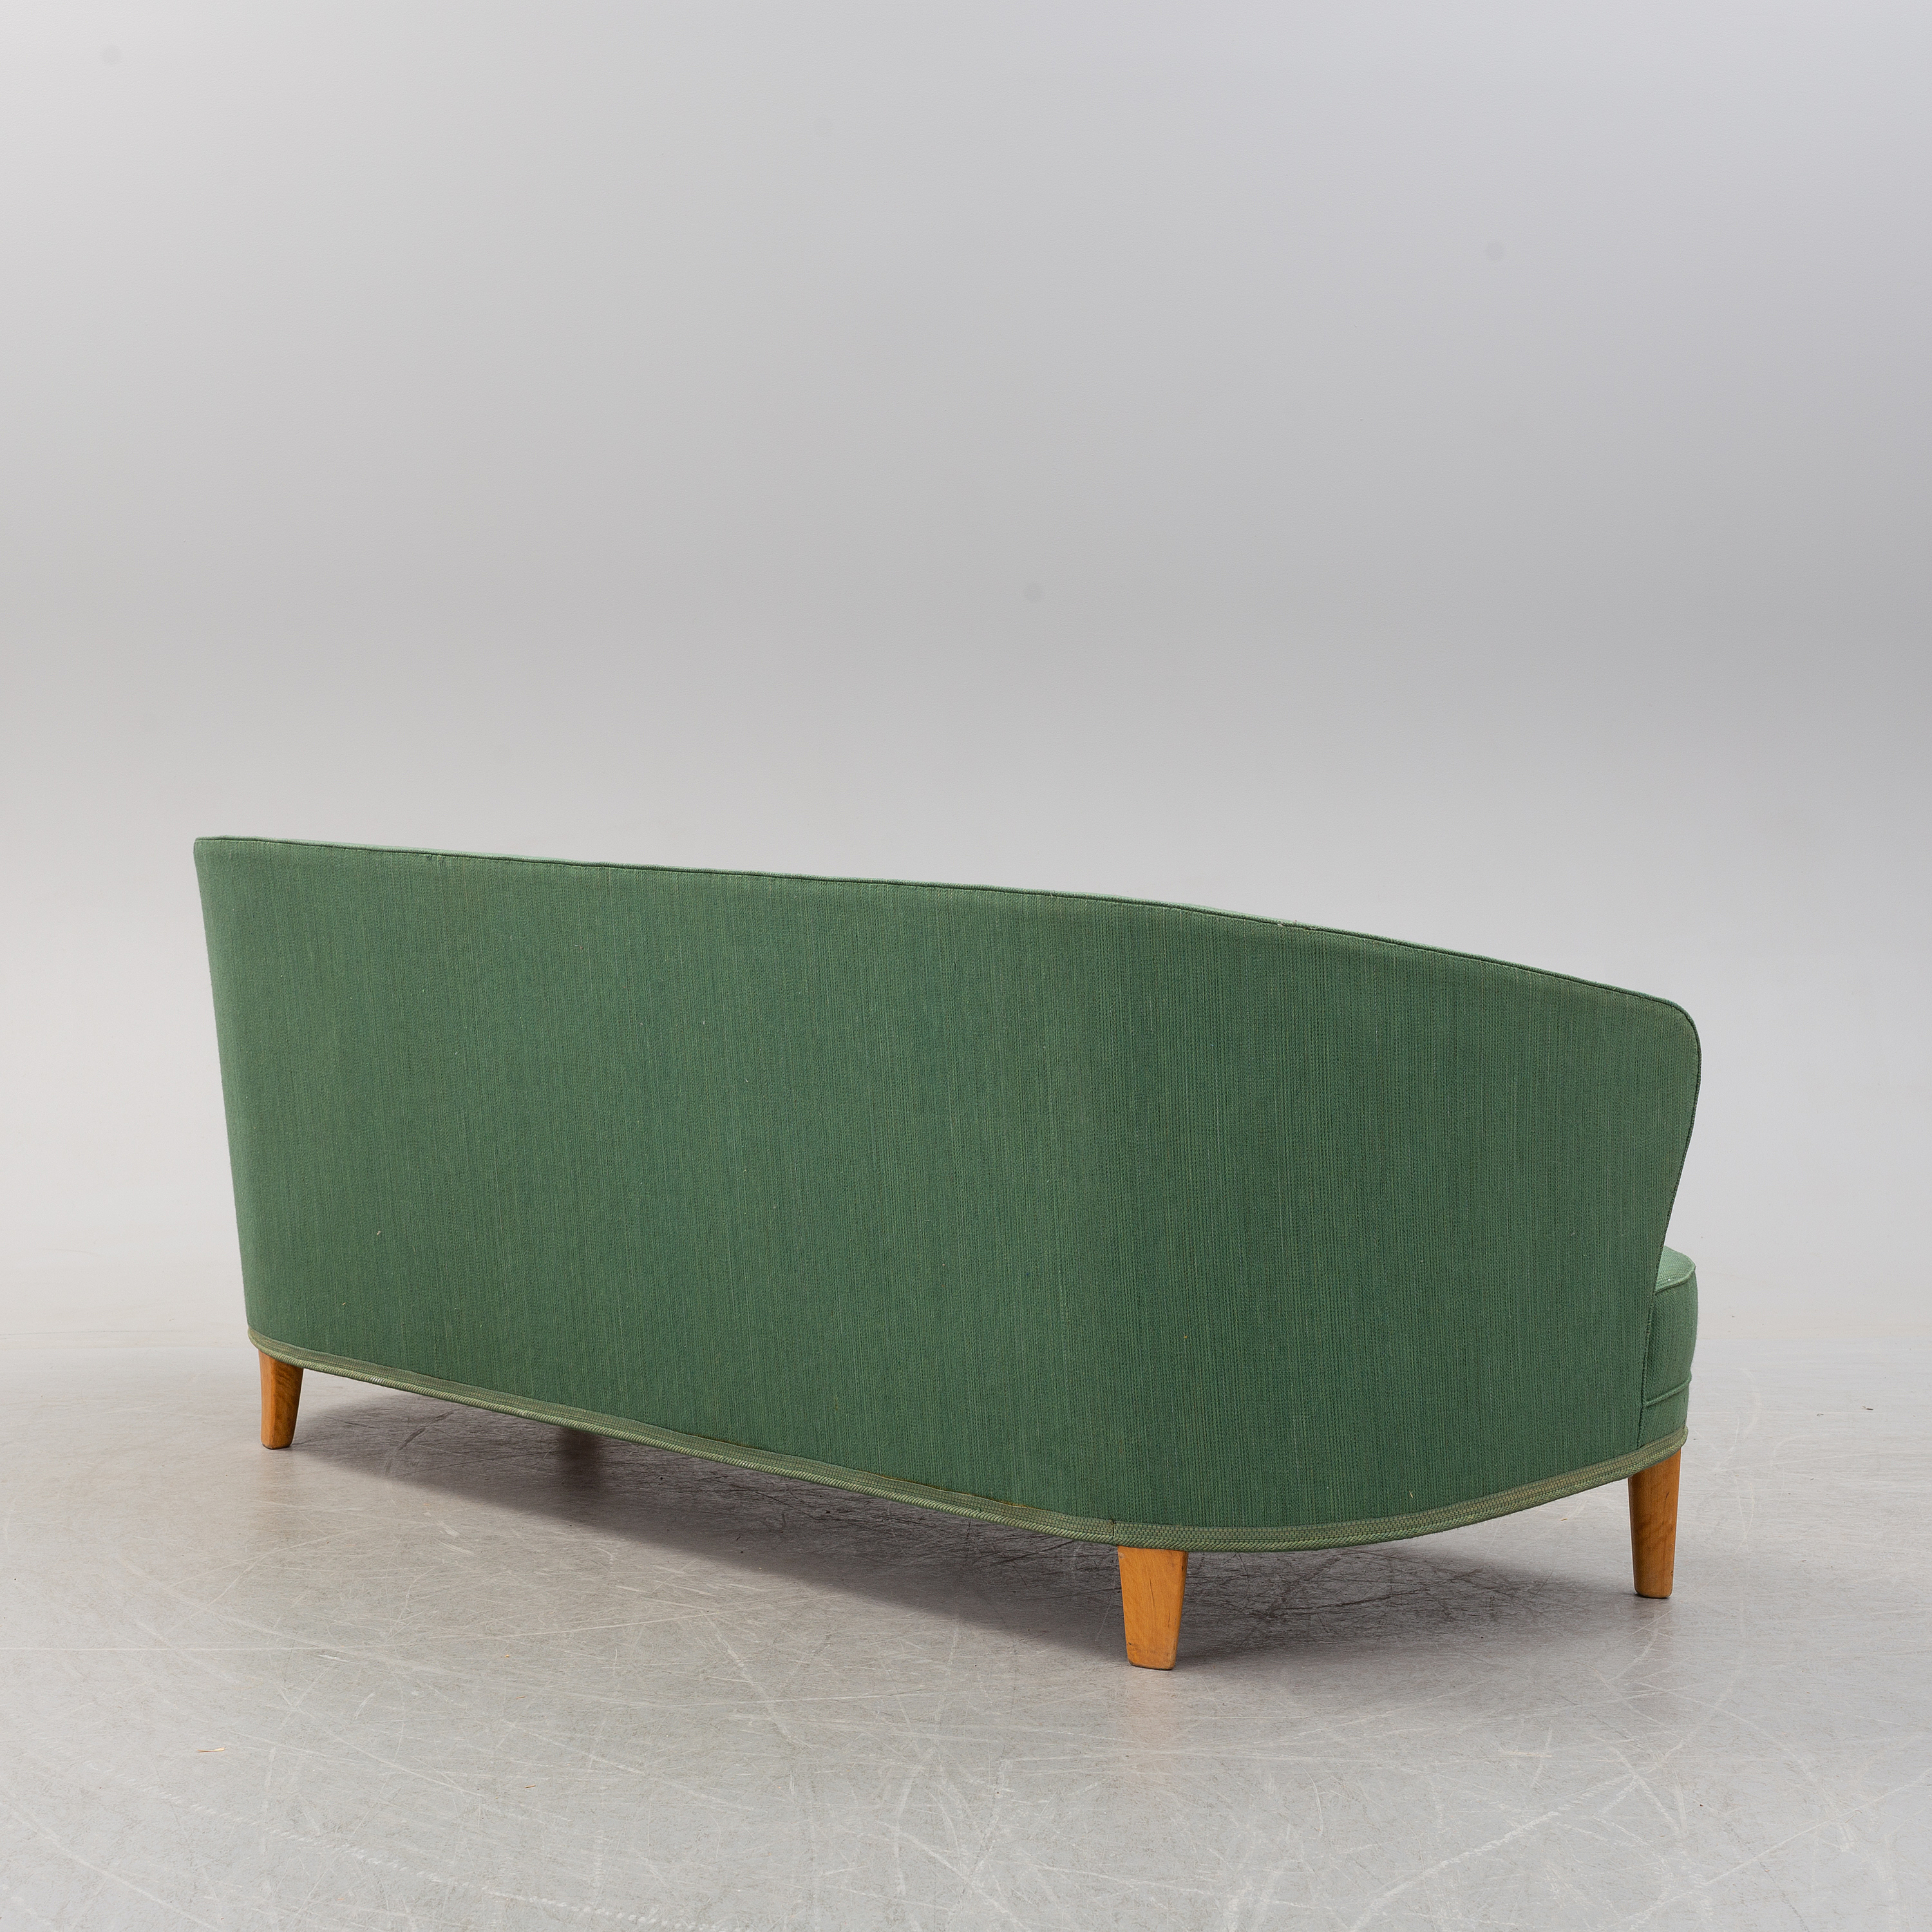 Couch Berlin Interesting Berlin Corner Sofa With Couch Berlin An